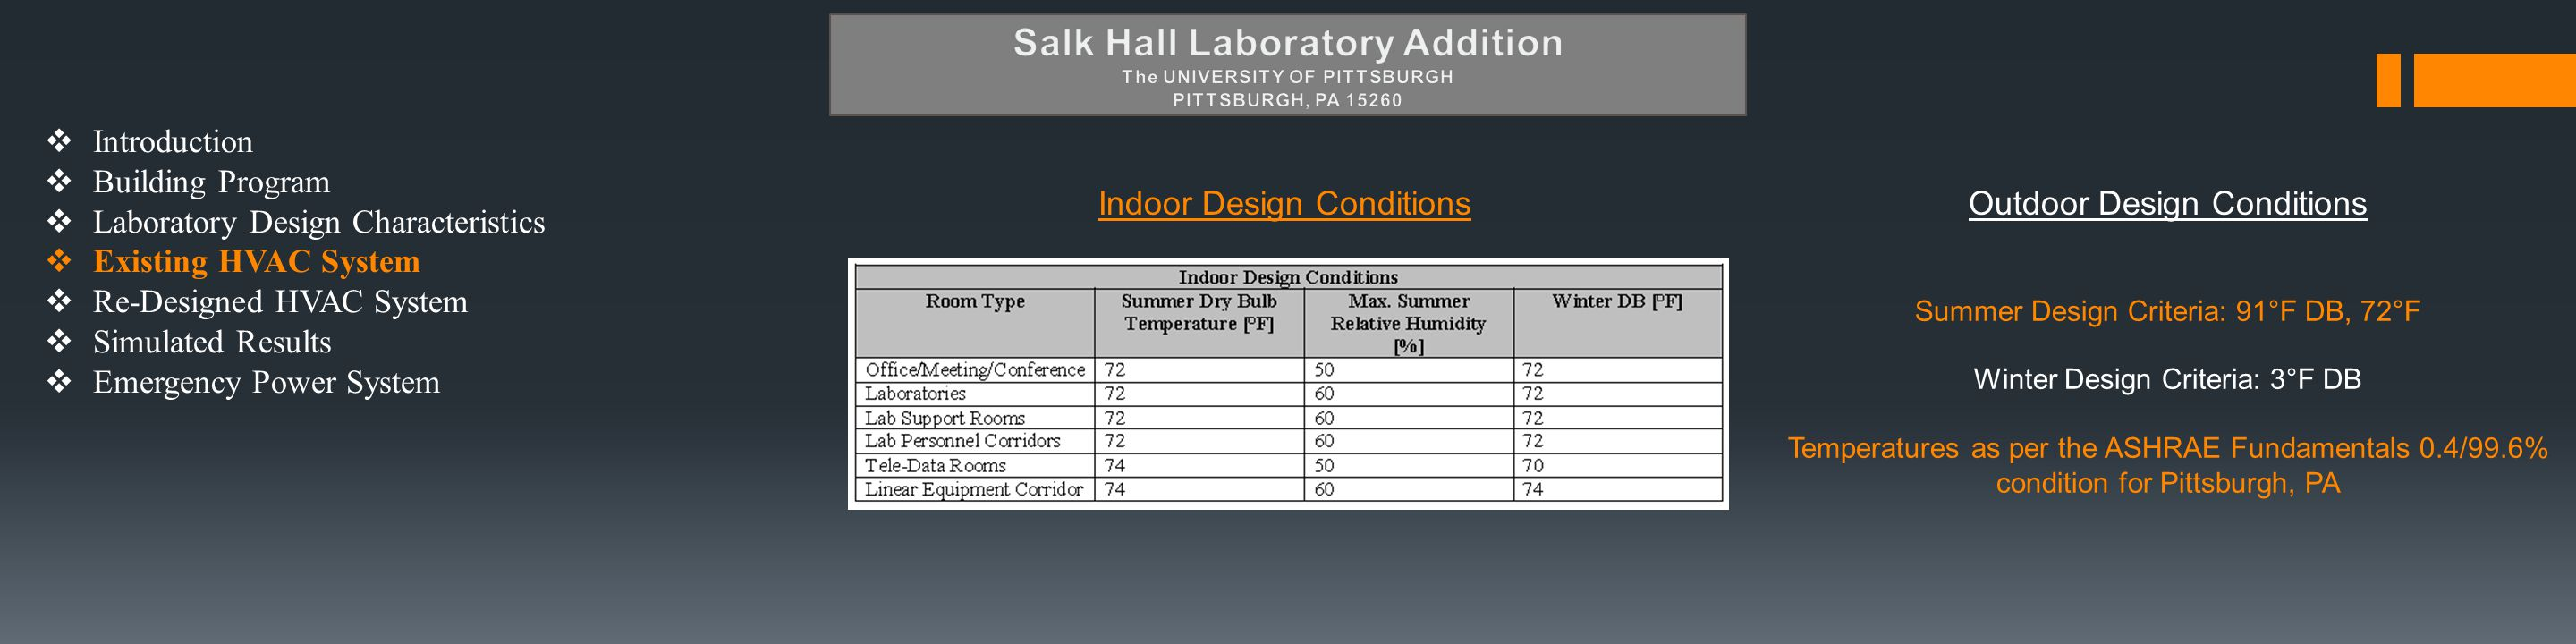  Introduction  Building Program  Laboratory Design Characteristics  Existing HVAC System  Re-Designed HVAC System  Simulated Results  Emergency Power System HVAC System Design Summary Three Identical 29,000 CFM Air Handling Units All Units are 100% OA (Per University Standard) Each AHU includes a Total Energy (Enthalpy) Recovery Wheel Exhaust air is discharged through high plume dilution exhaust fans B.O.D.